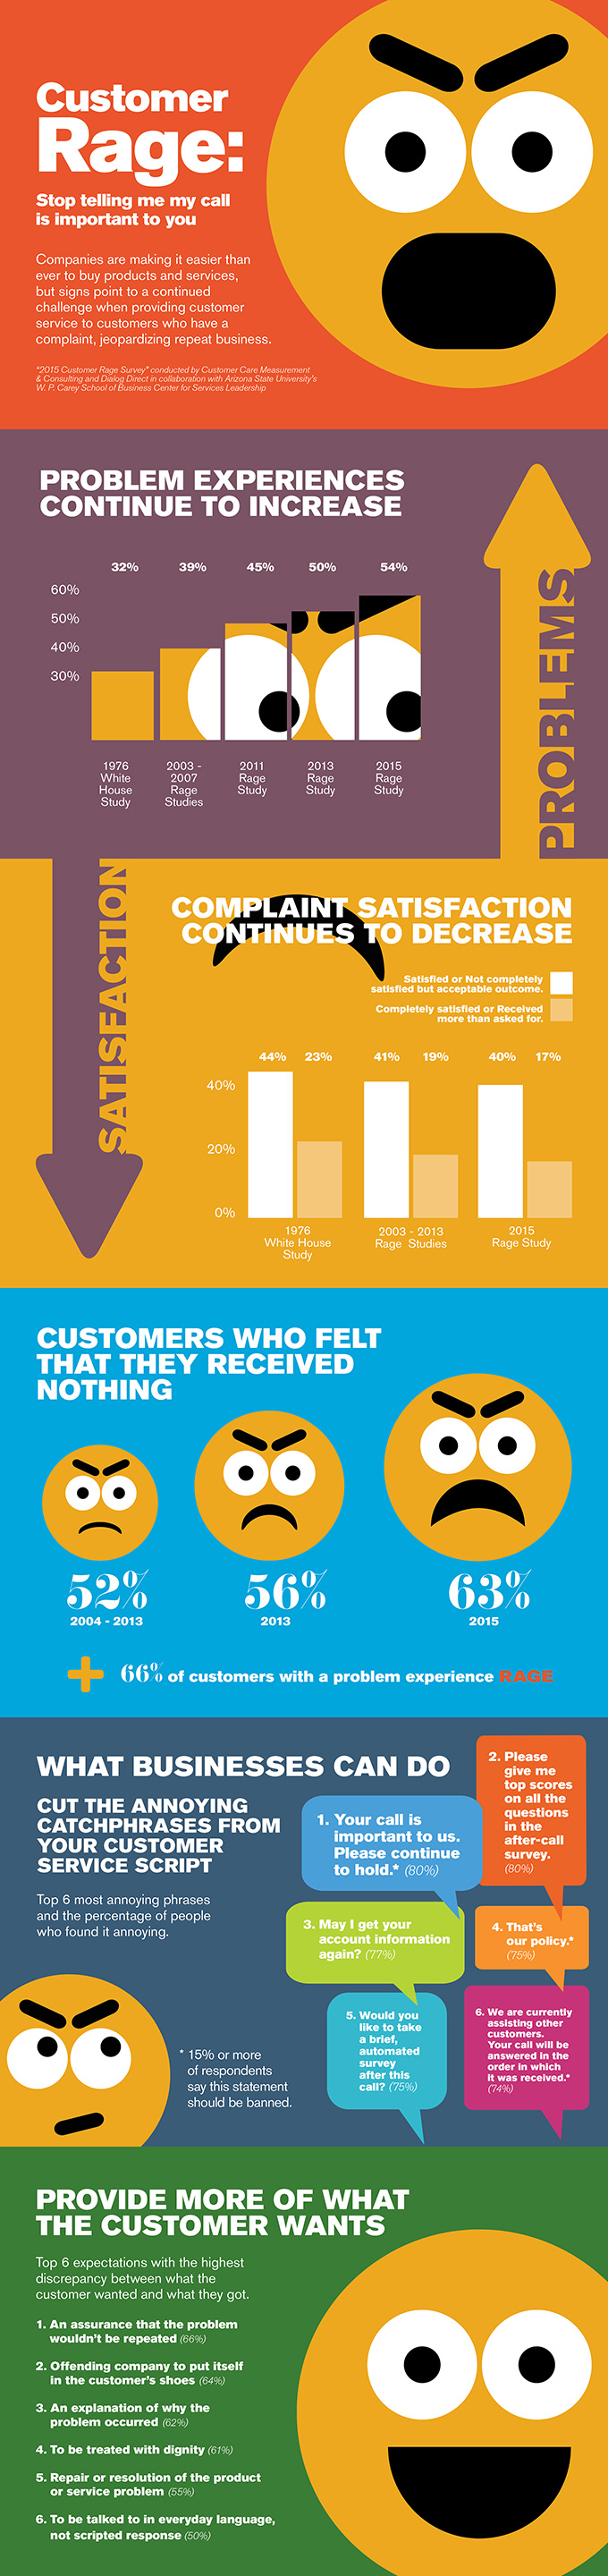 Customer-Rage-Infographic-web